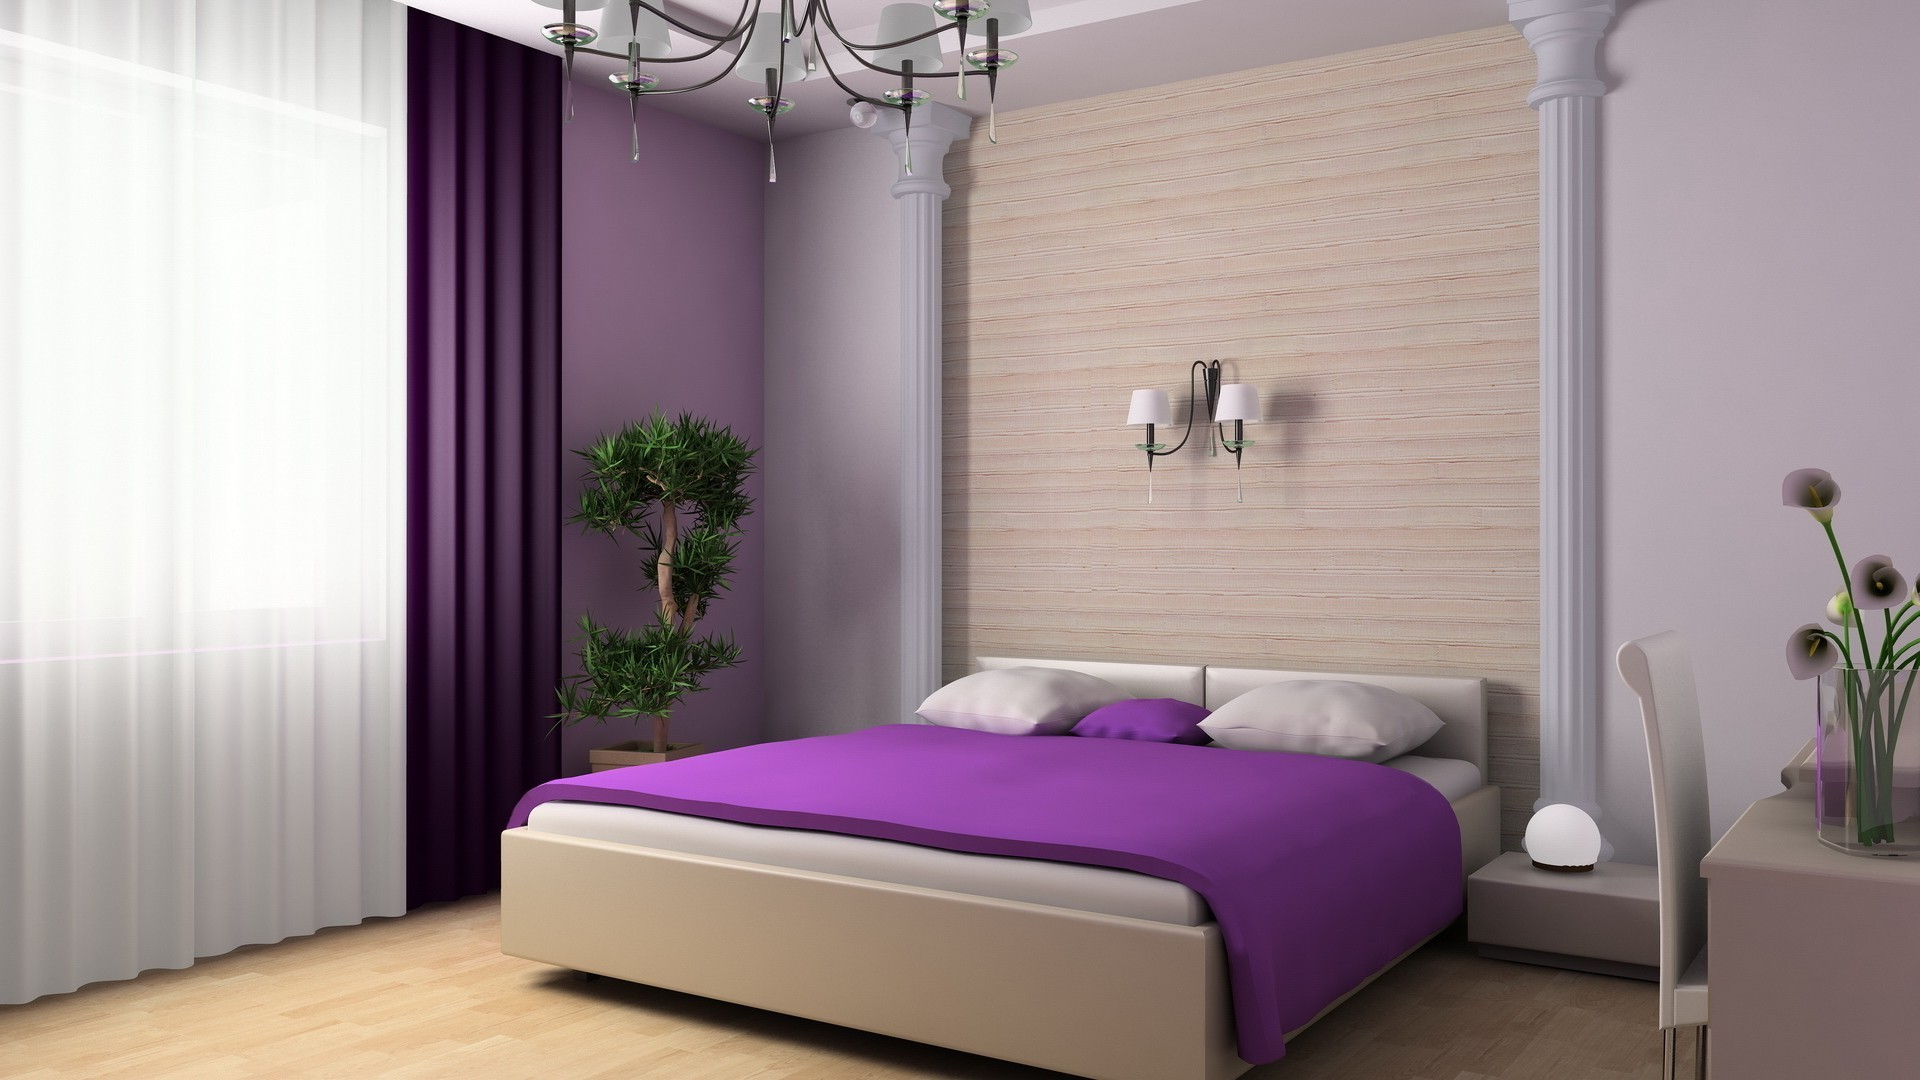 bedroom furniture room bed lamp hotel contemporary floor indoors interior design apartment house window inside pillow table luxury headboard home family